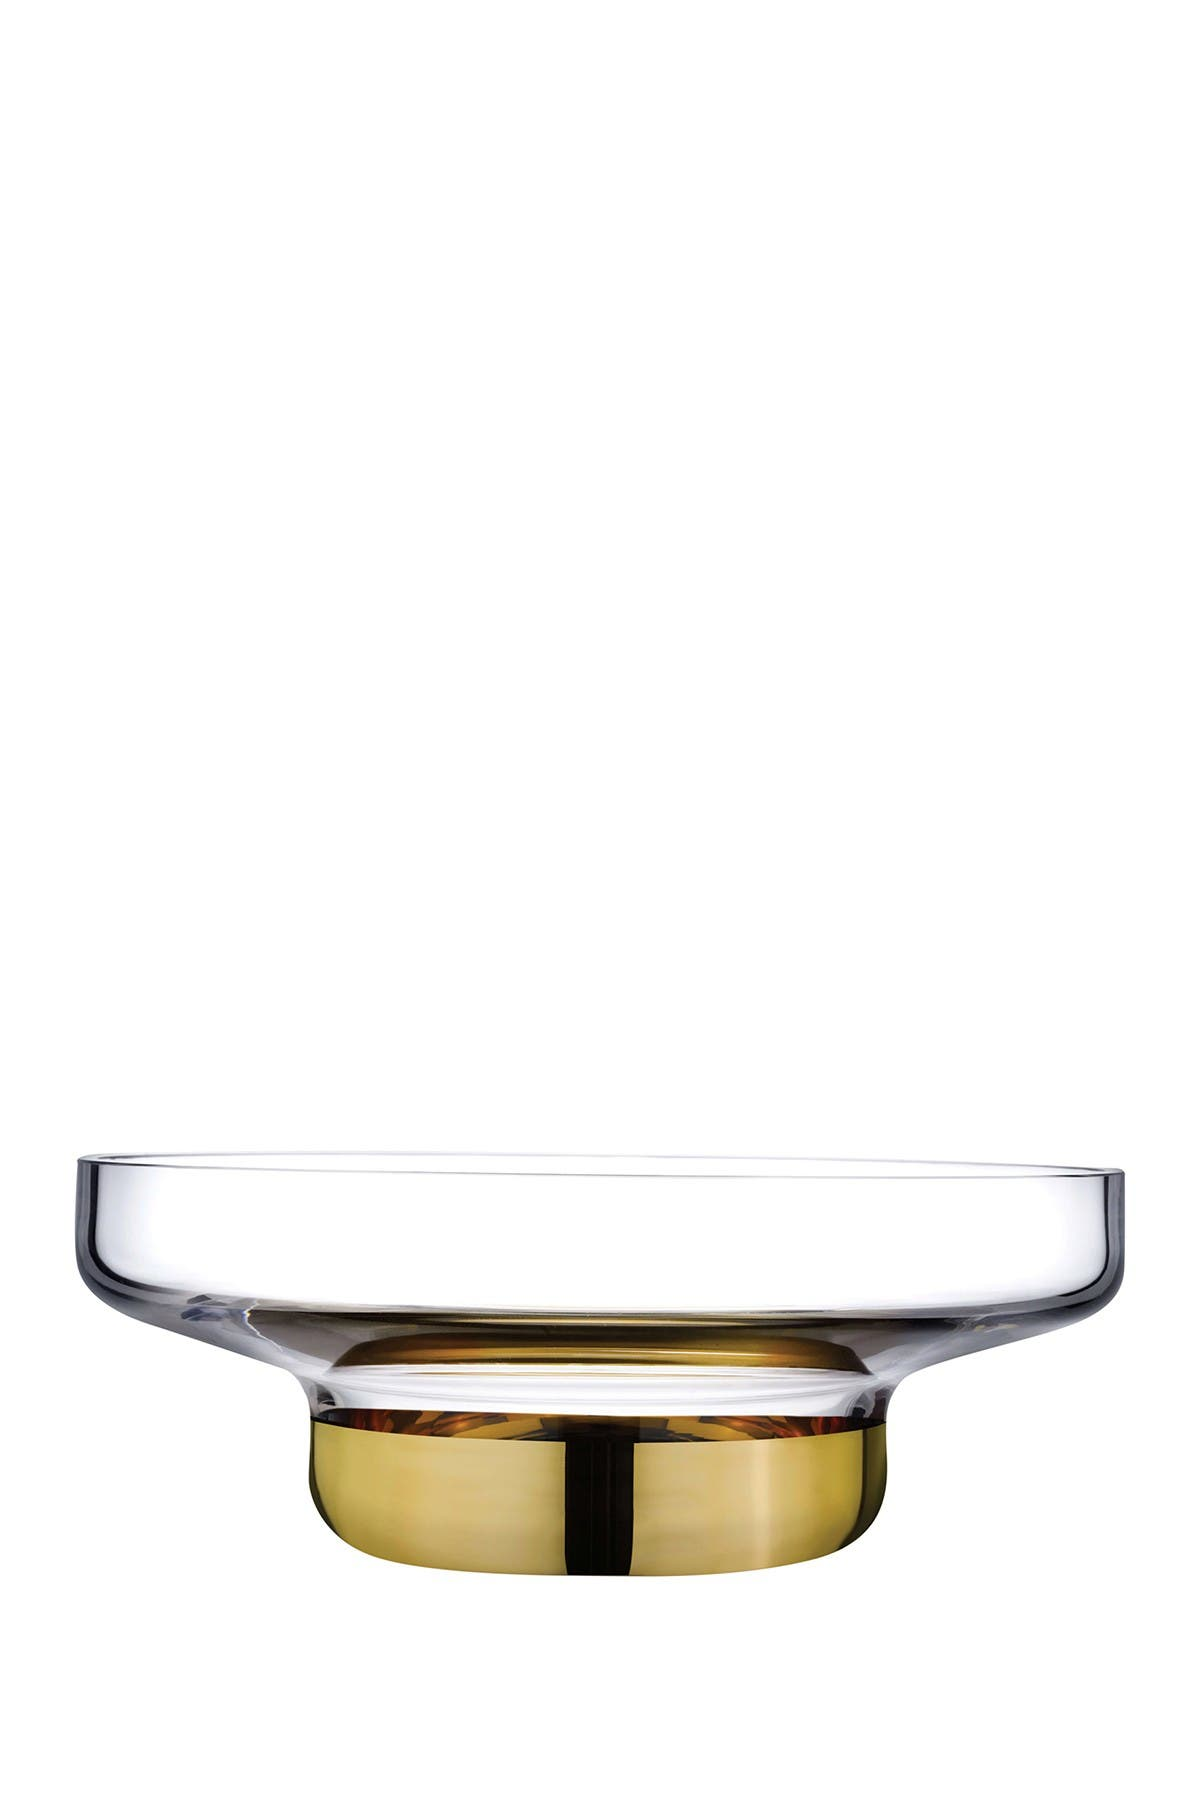 Nude Glass Contour Bowl - Wide with Clear Top and Golden Base at Nordstrom Rack